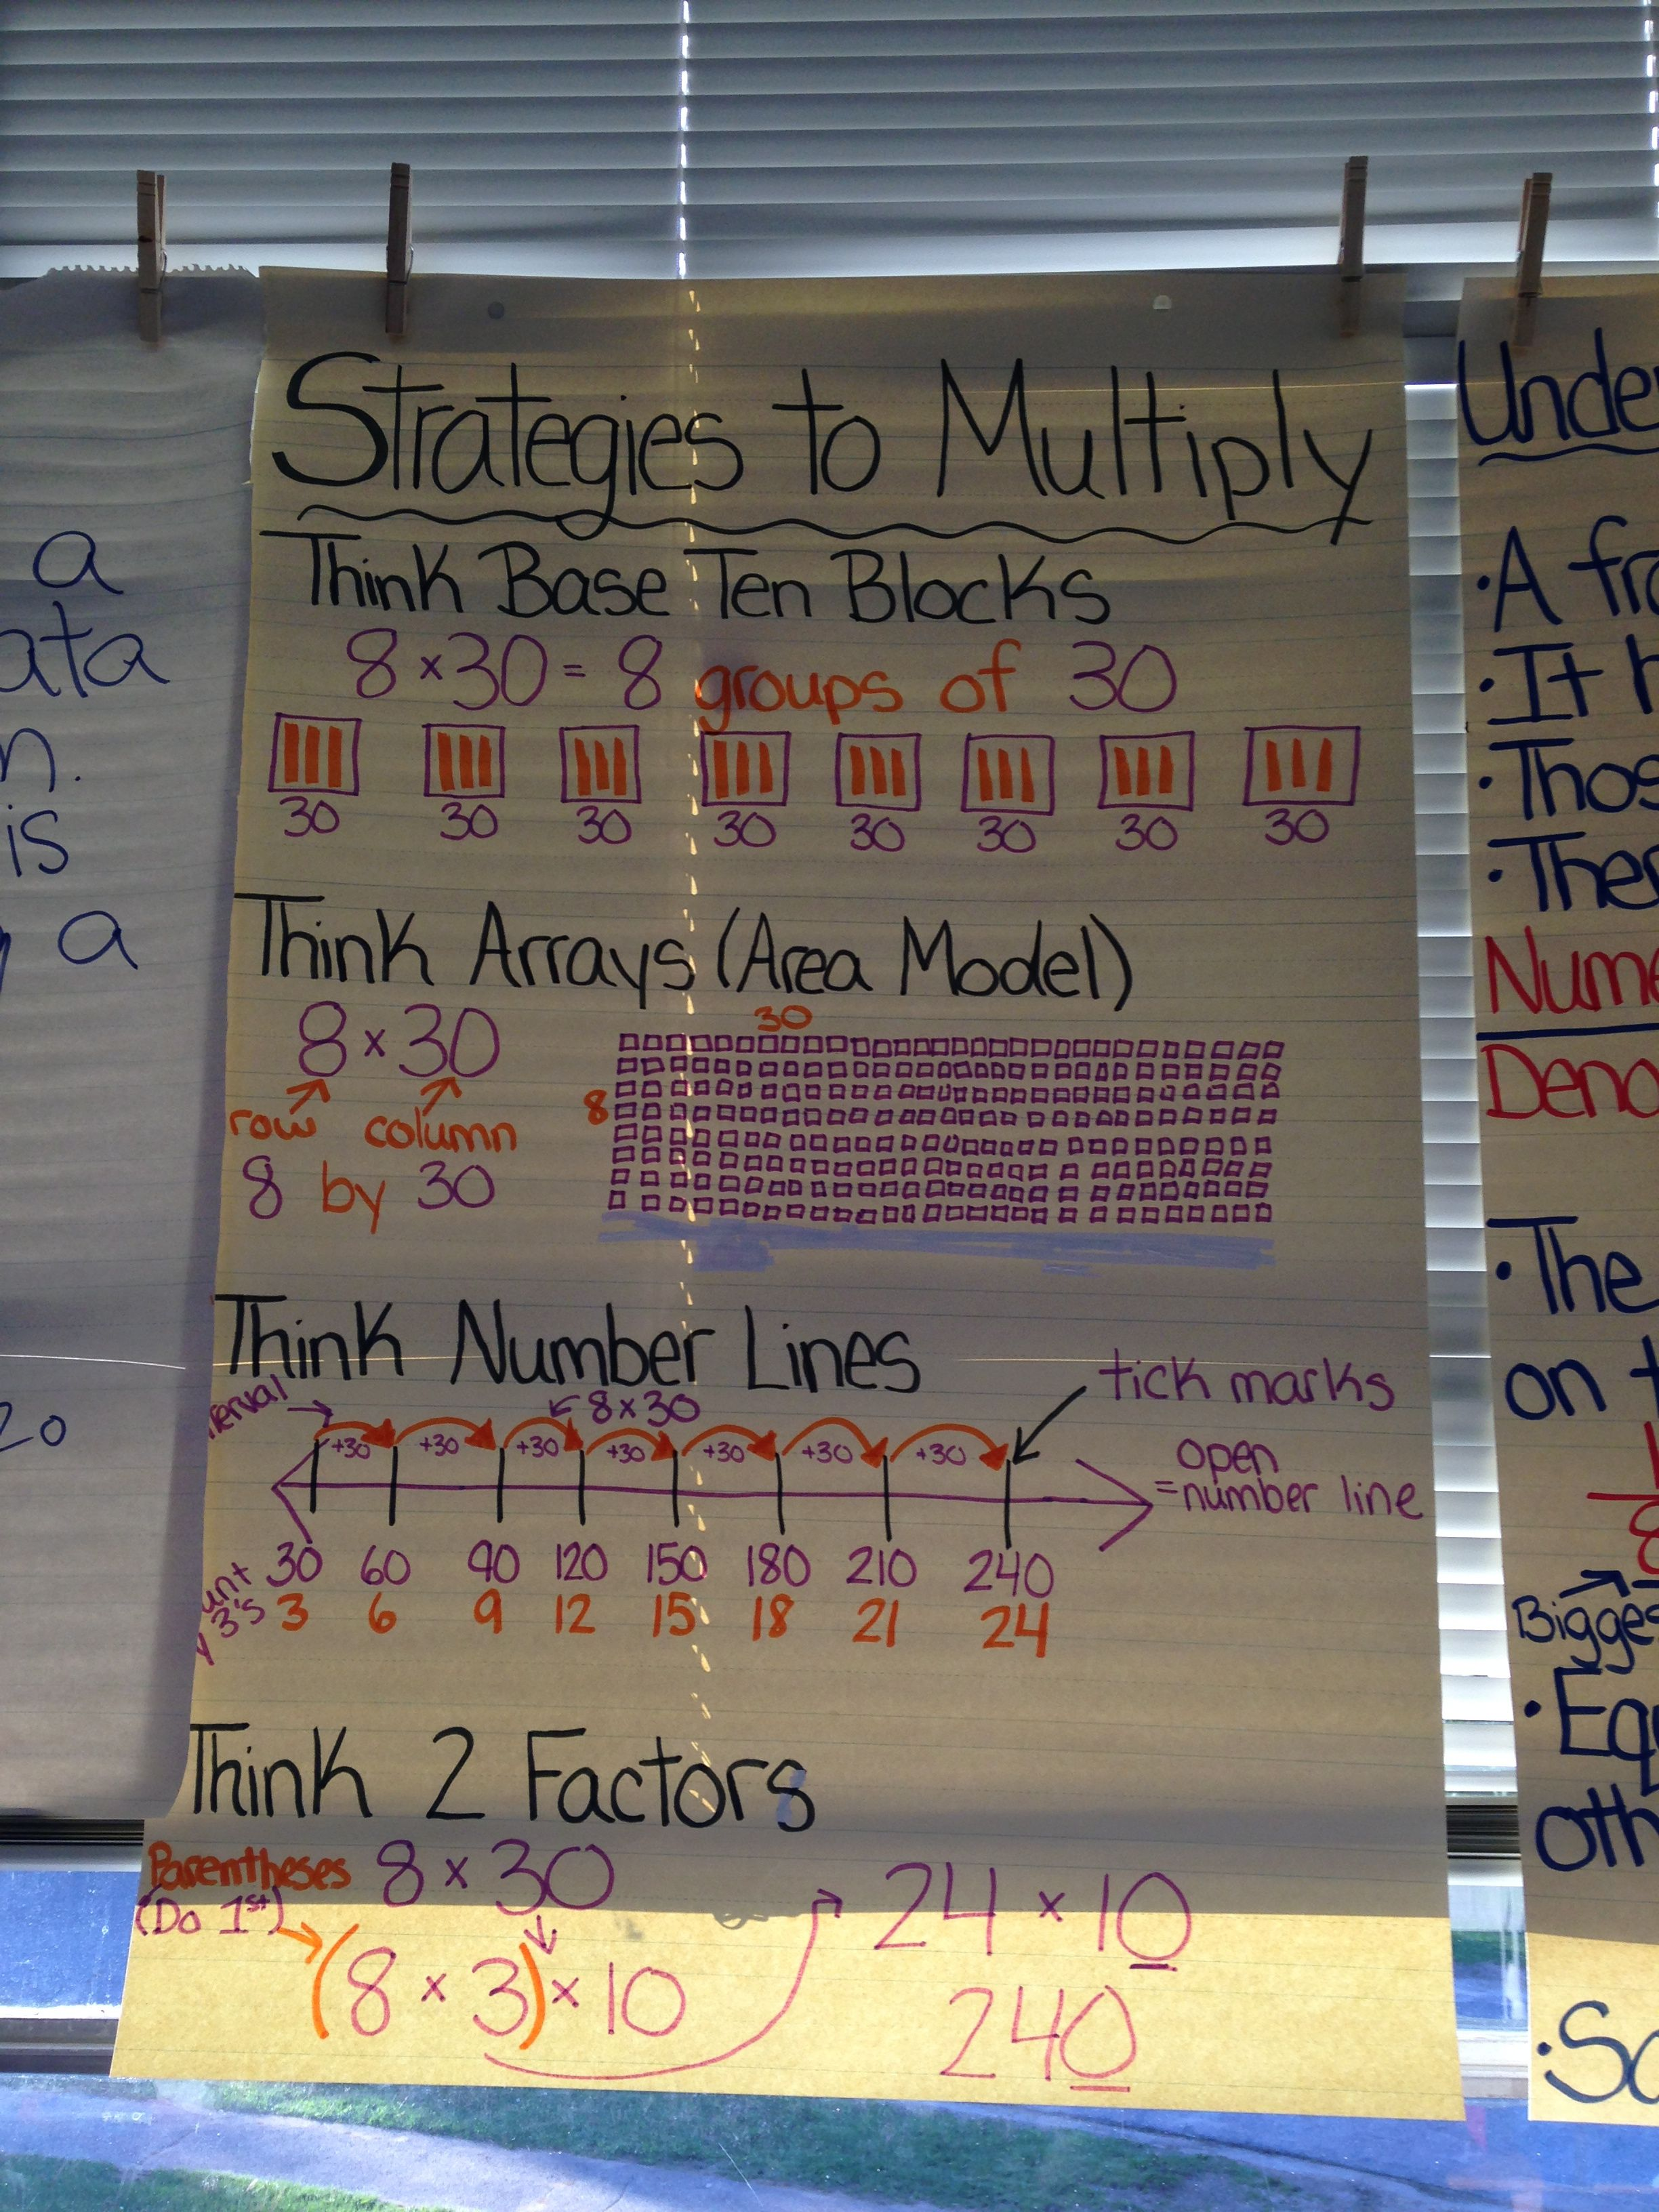 Strategies To Multiply Chart